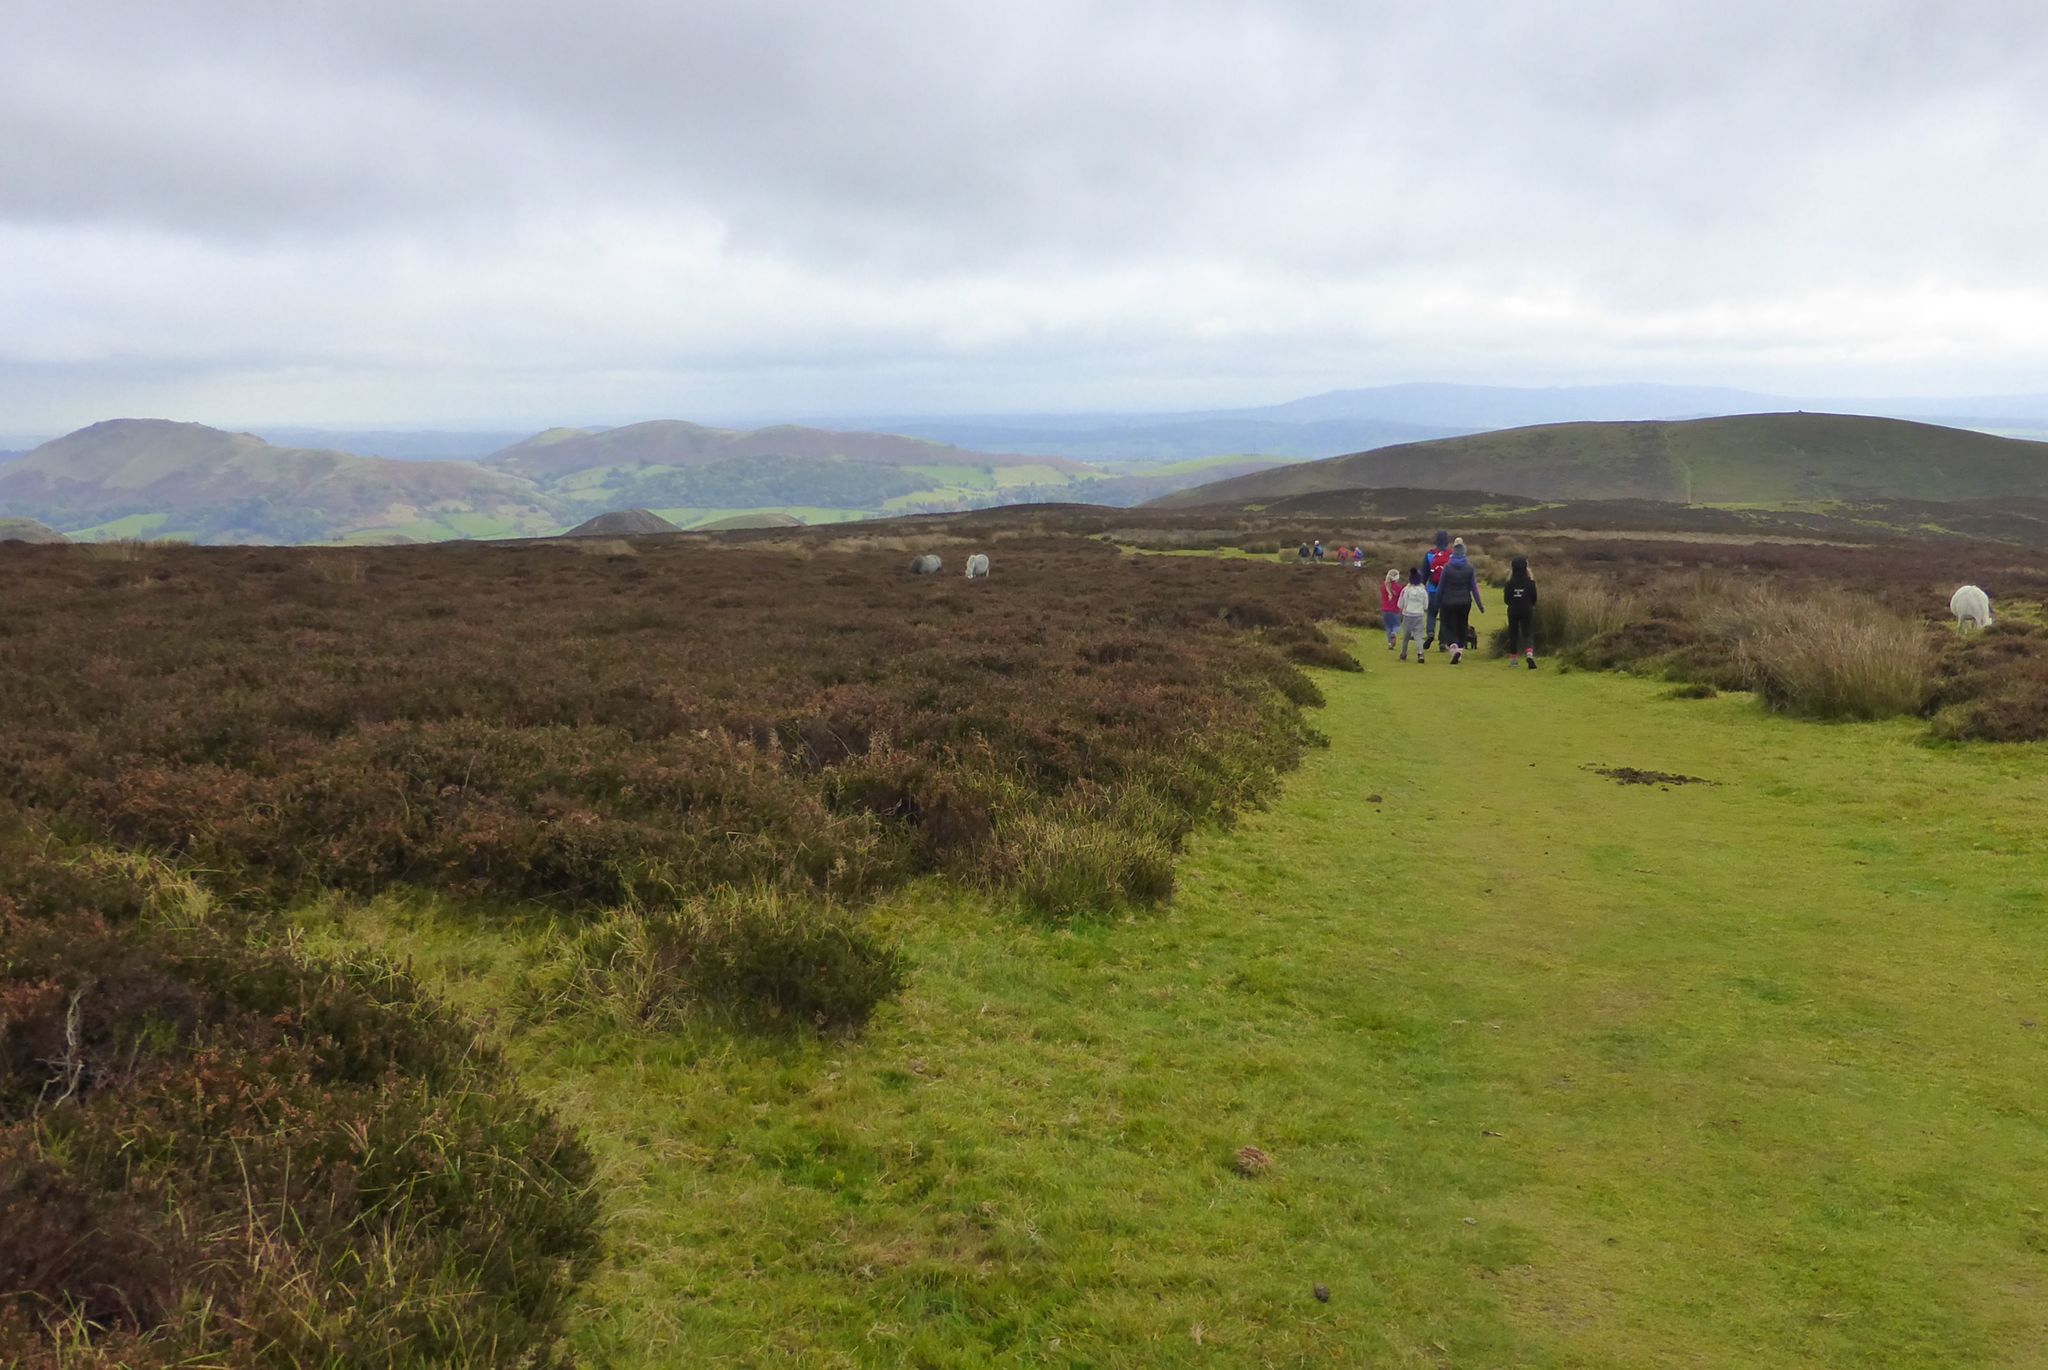 Carding Mill Valley and the Long Mynd - Shropshire, England